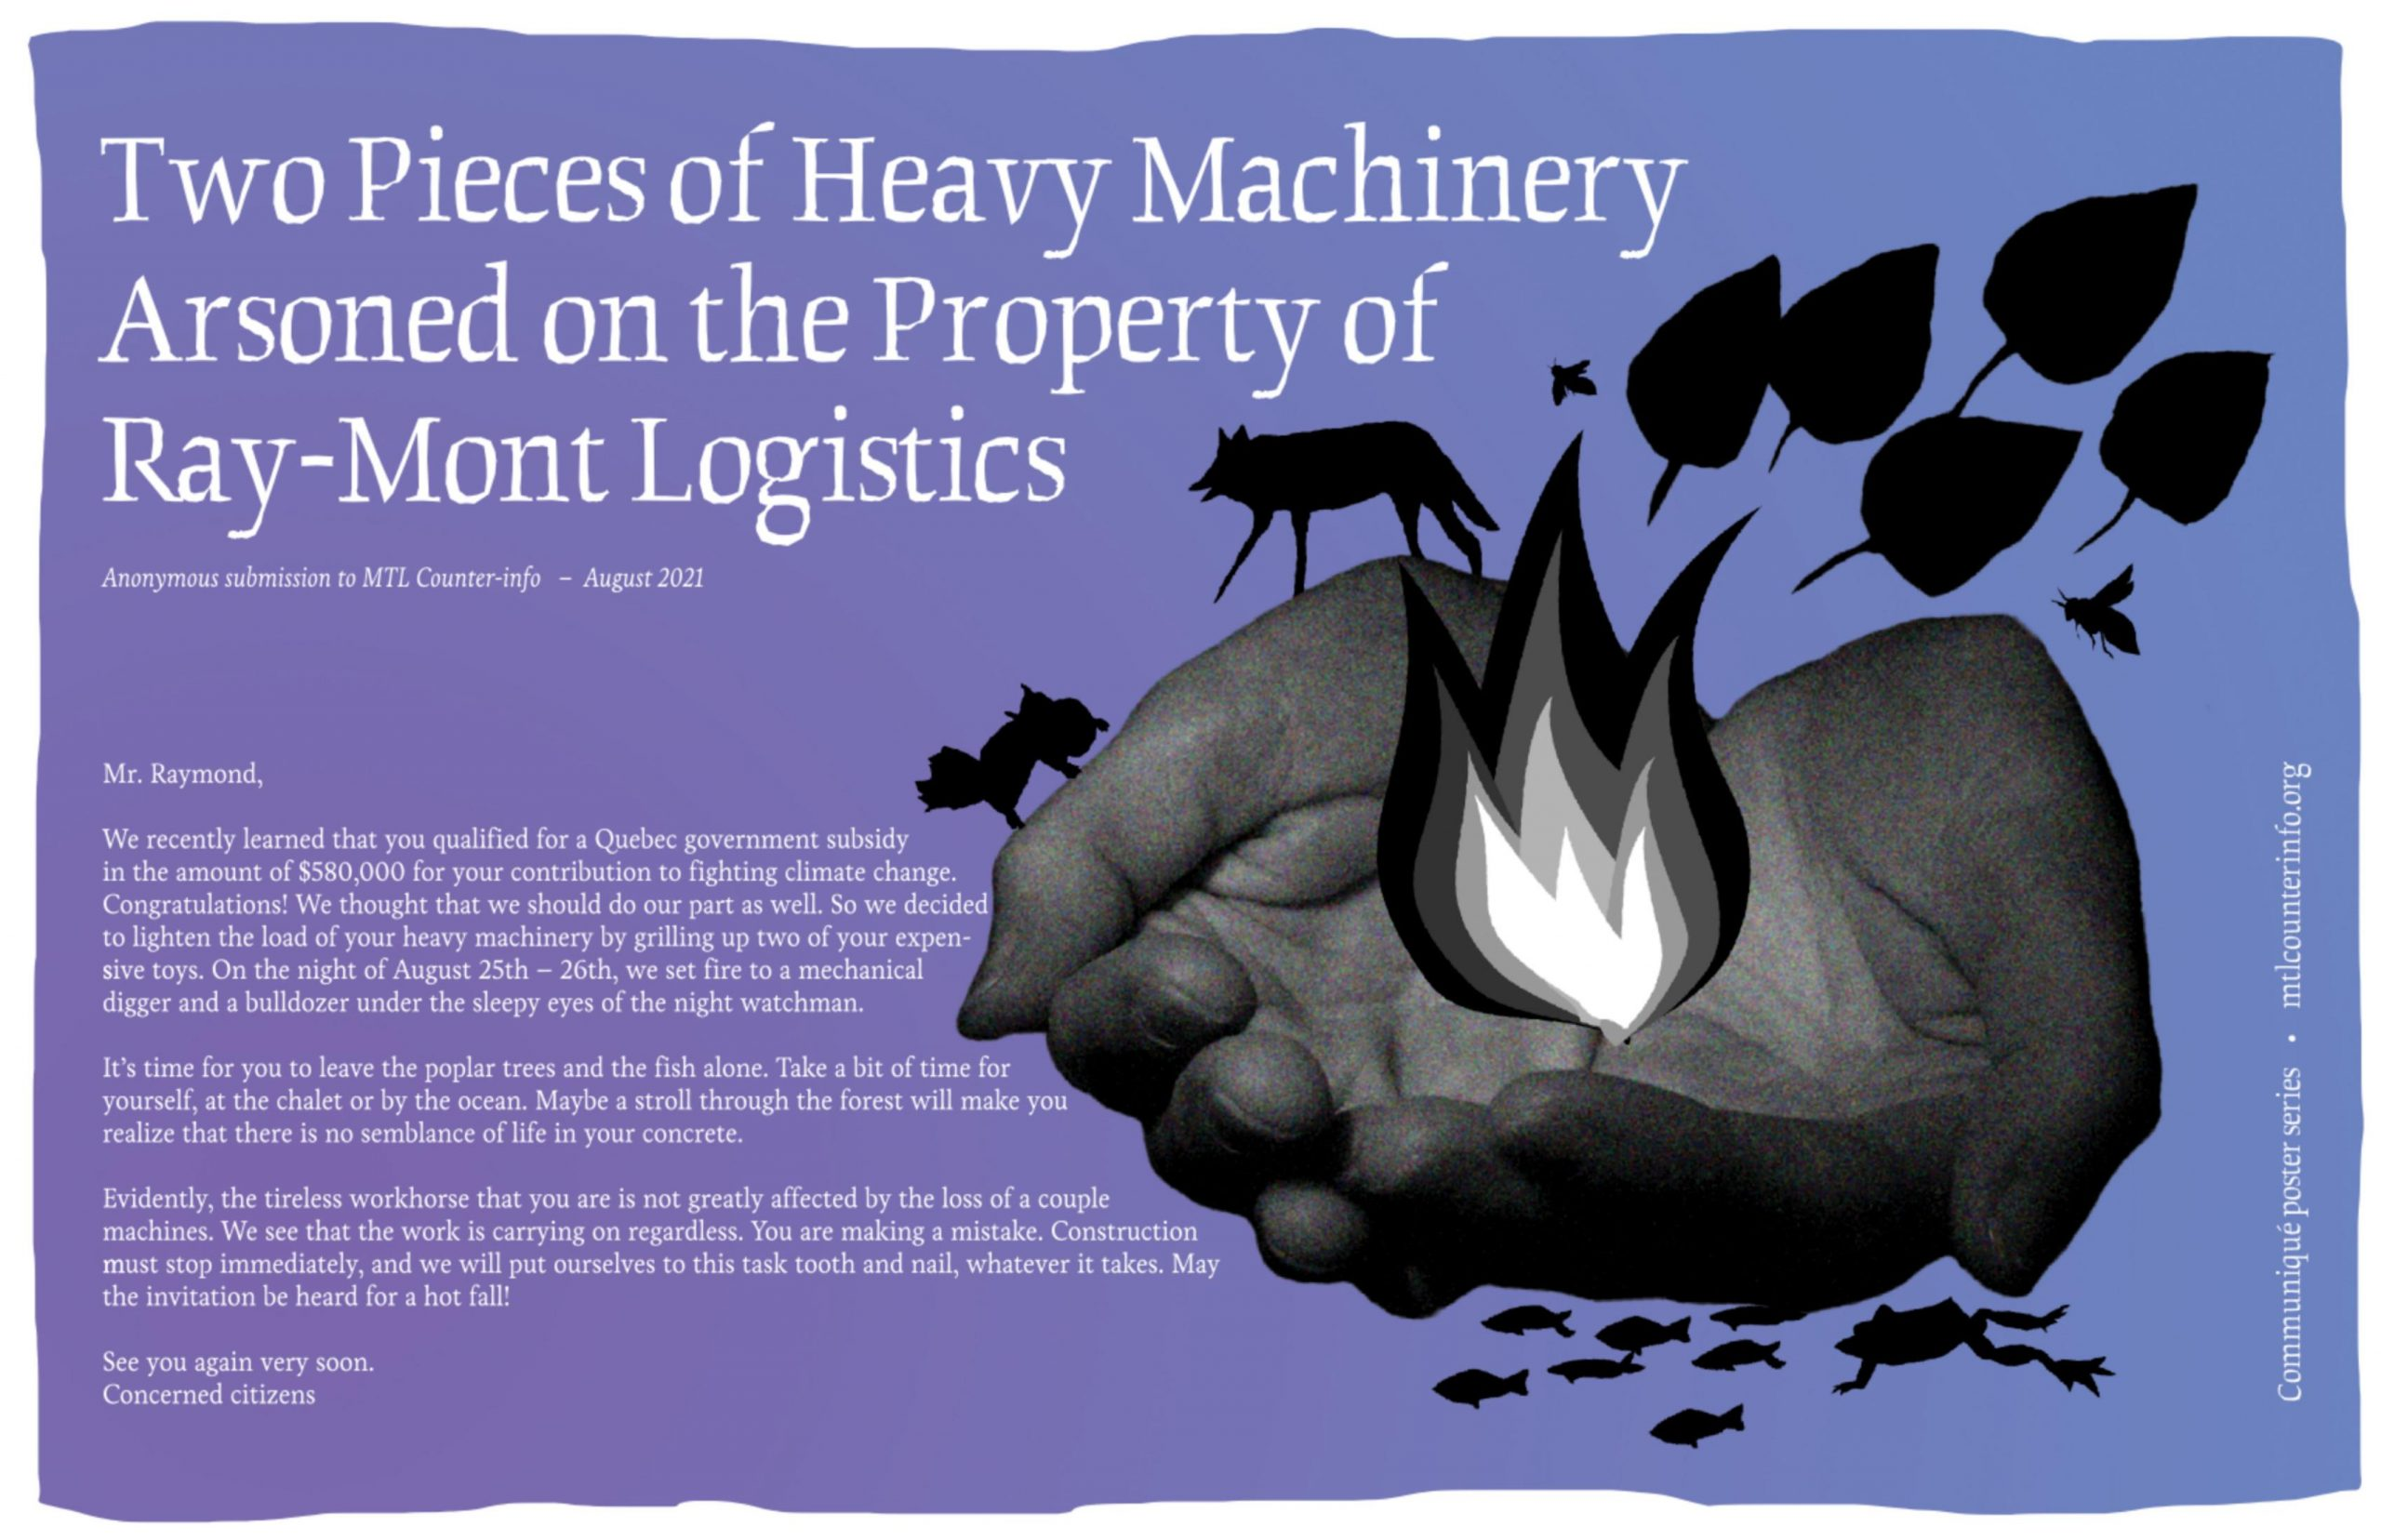 New Communiqué Poster: Heavy Machinery Arsoned on Property of Ray-Mont Logistics